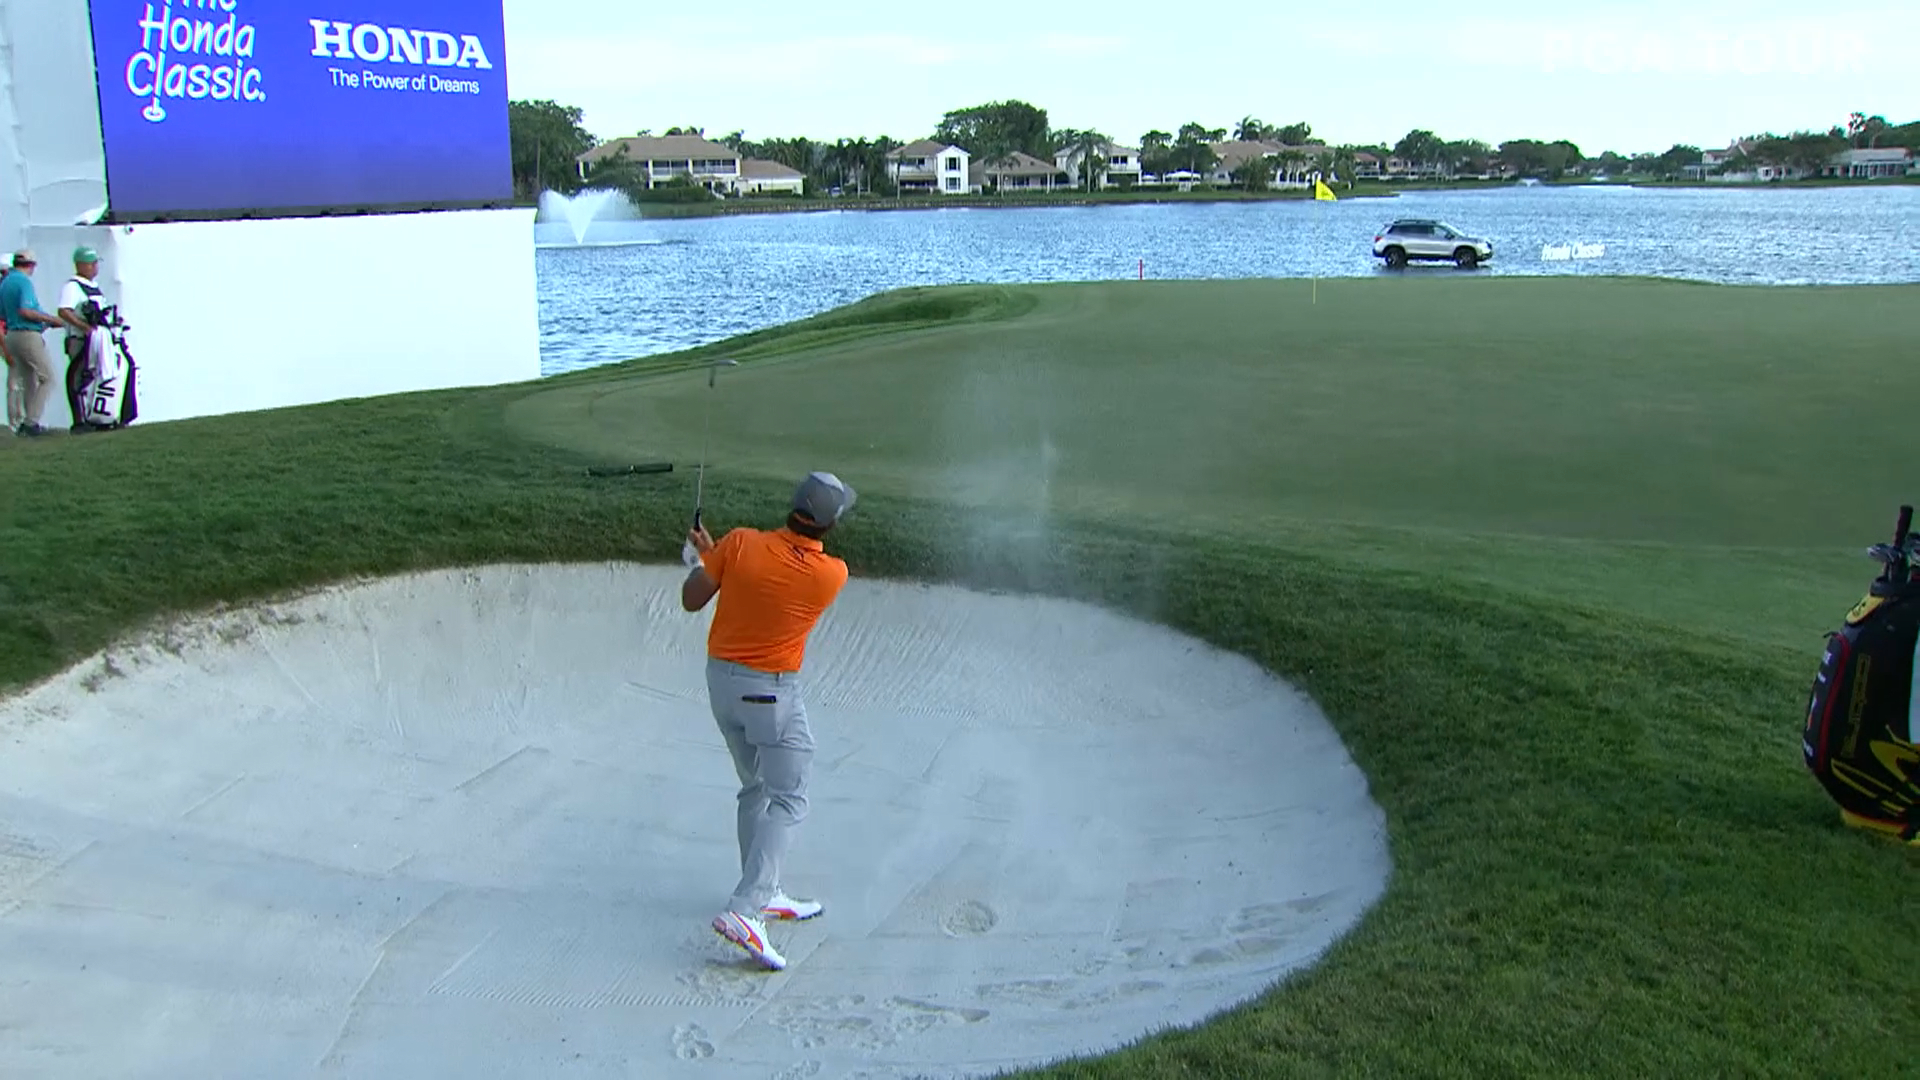 Highlights of Mitchell's Honda Classic victory